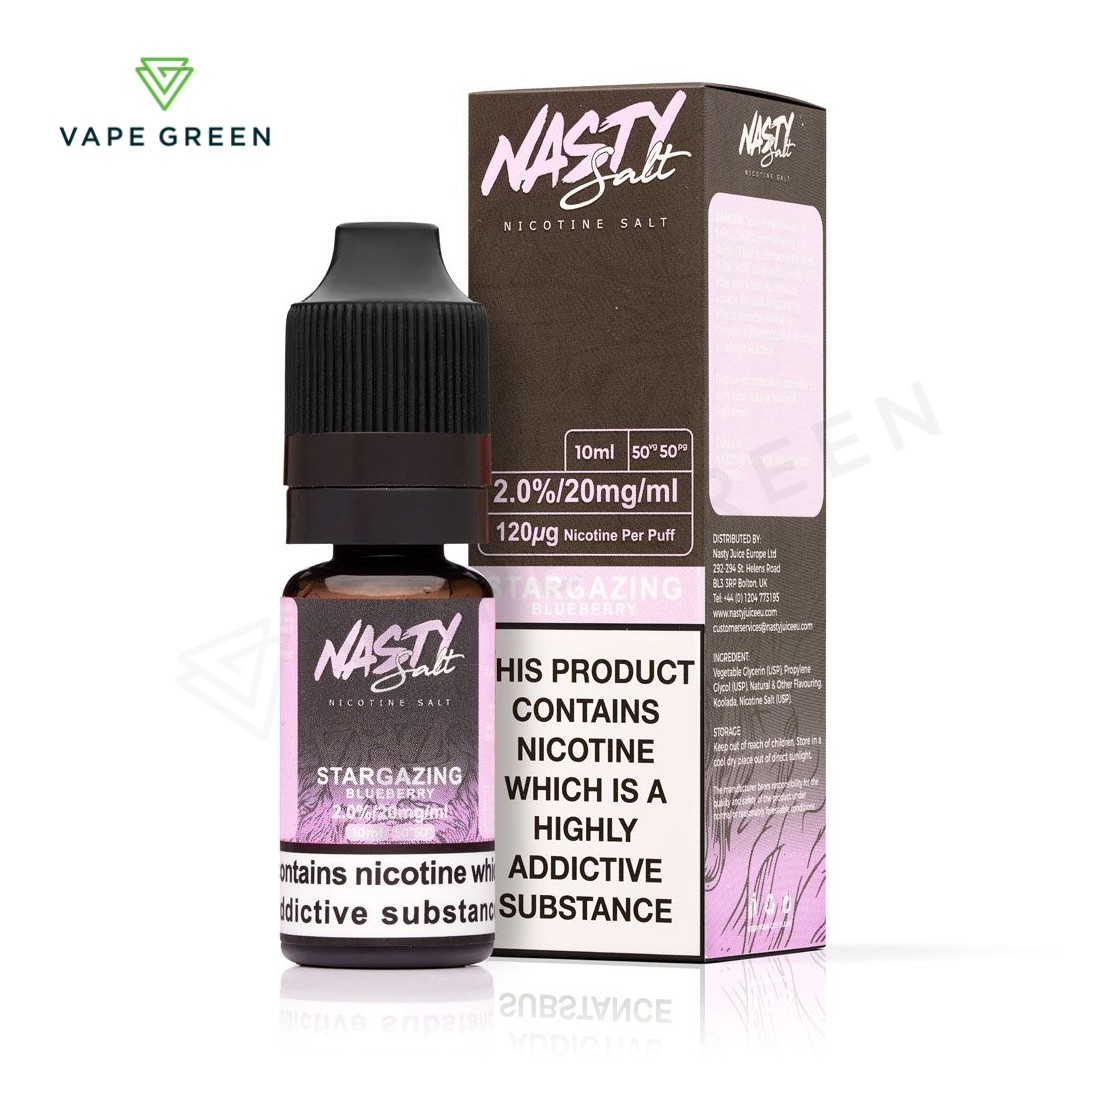 Stargazing eLiquid by Nasty Salt